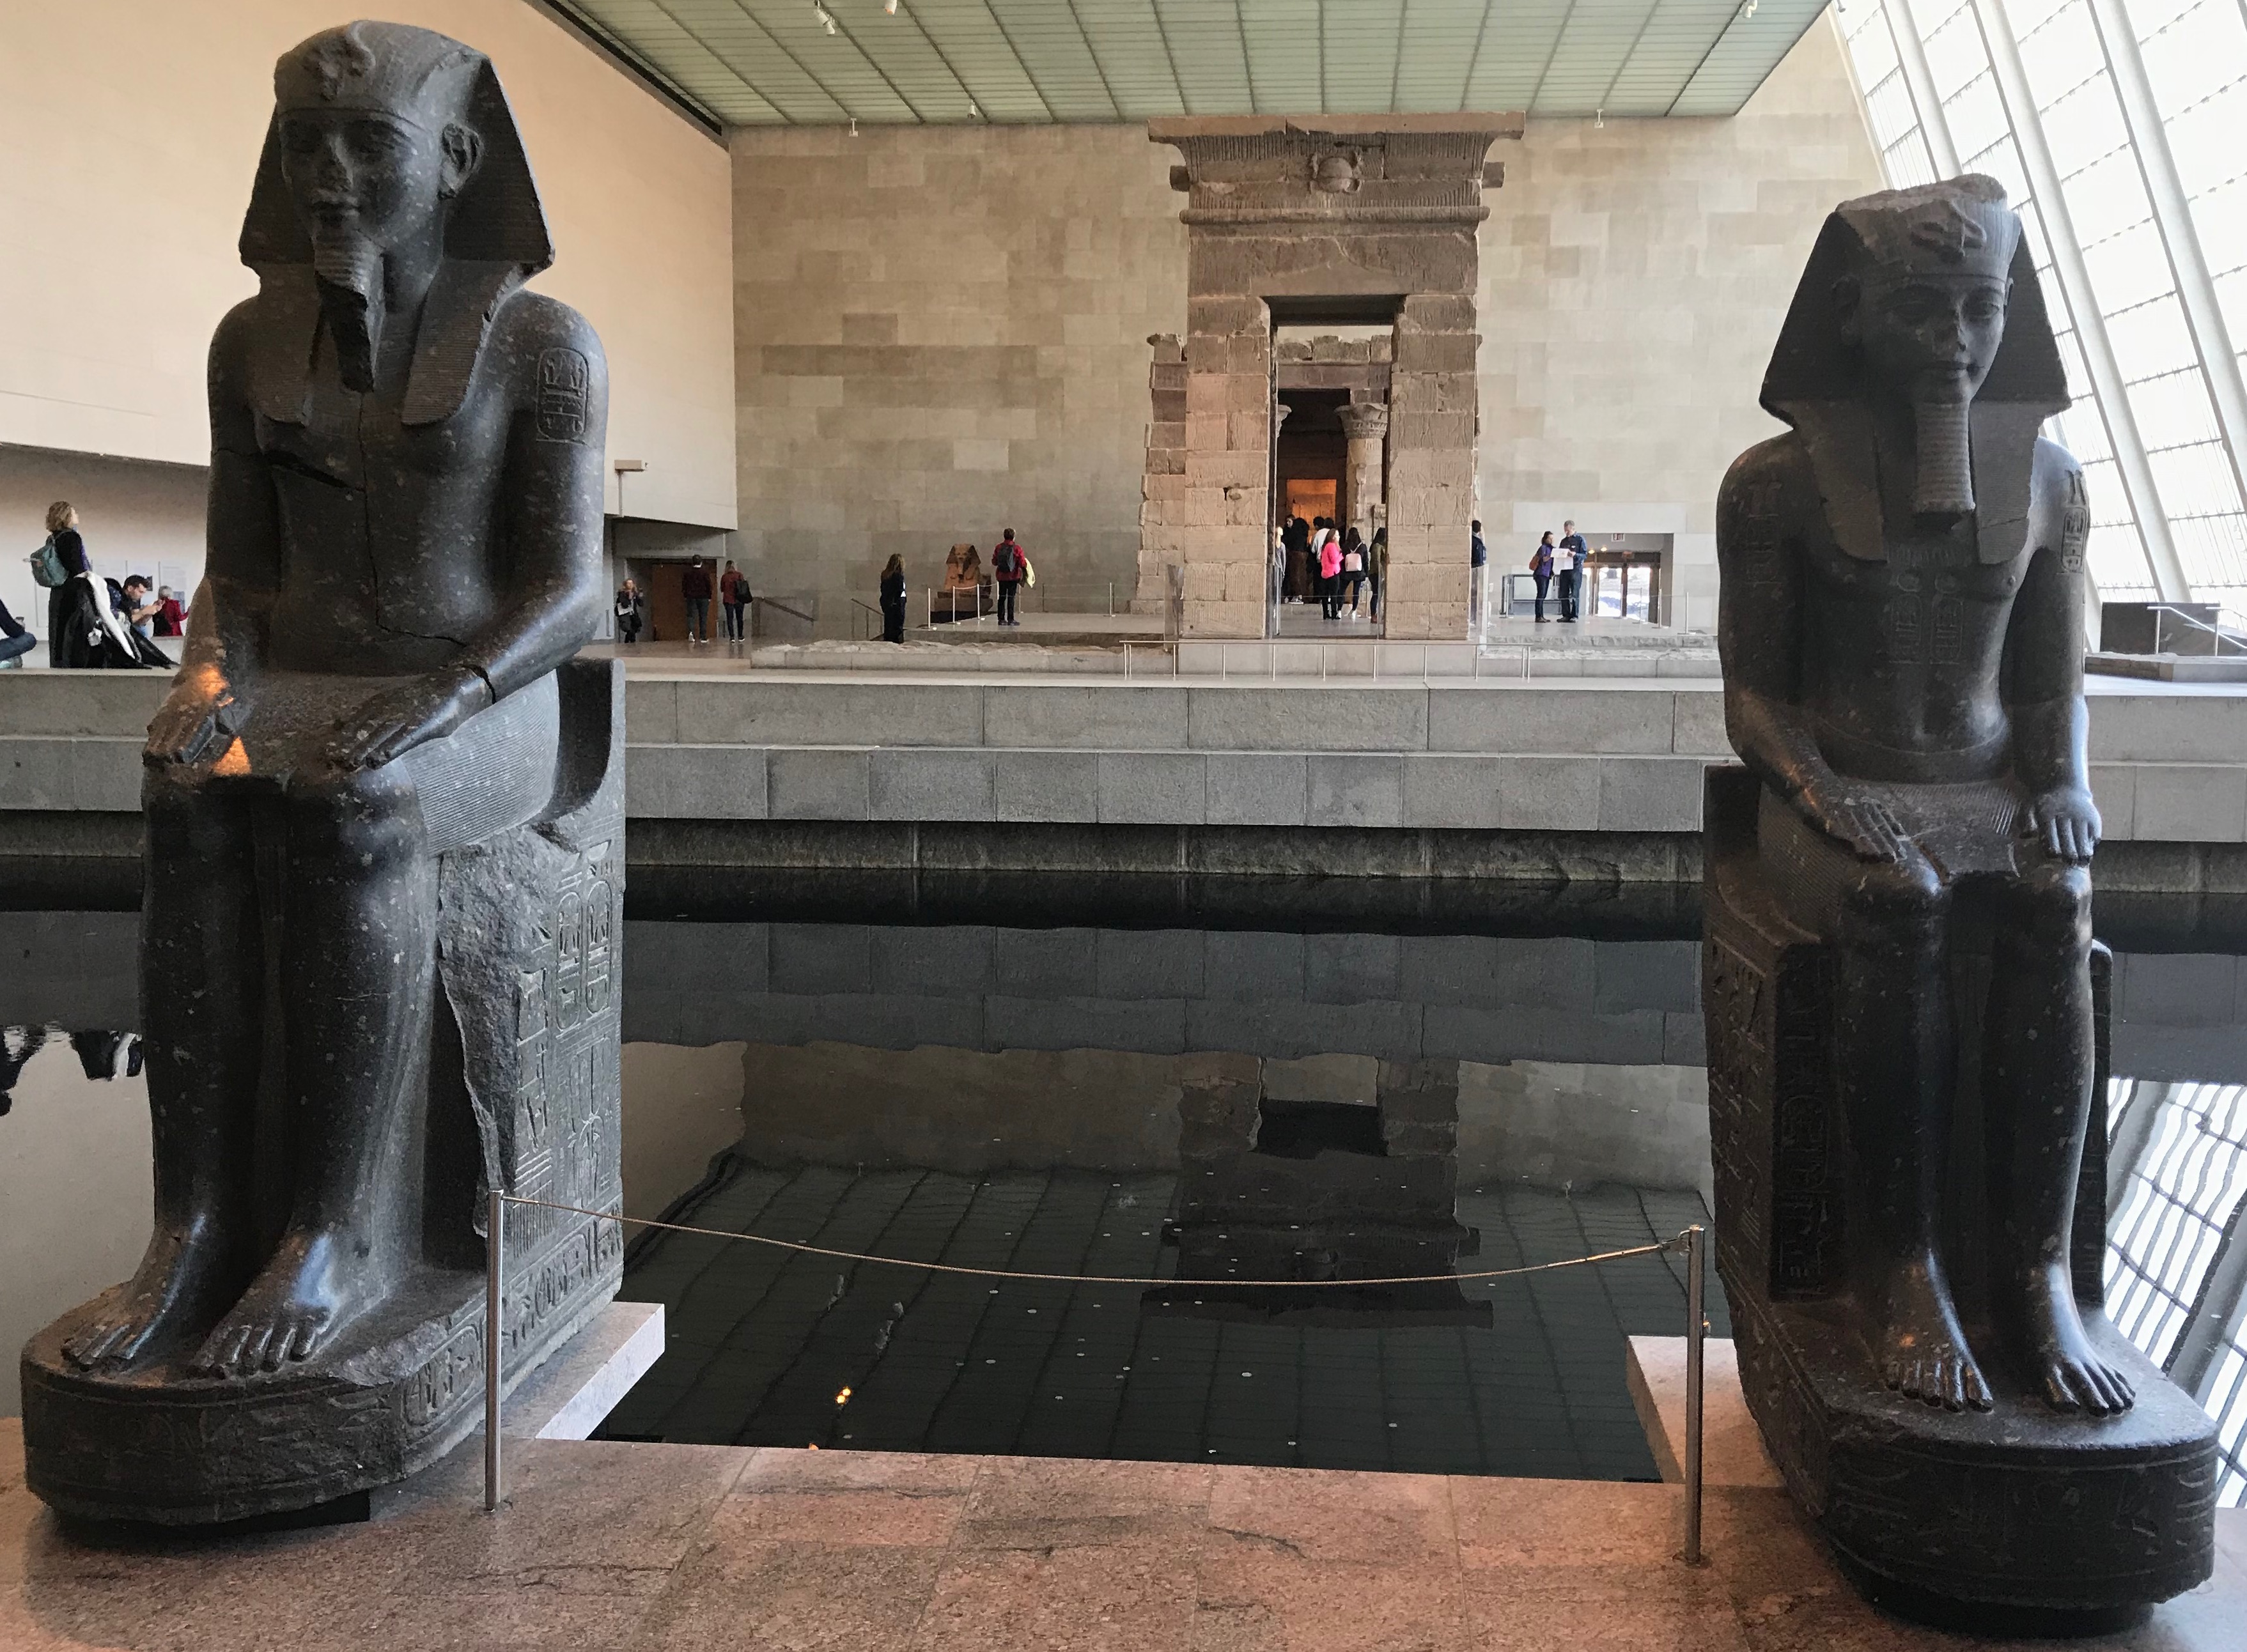 The view of the Temple of Dendur from an entrance of the Sackler Wing at the Metropolitan Museum of Art in New York City. (DCNF/Ethan Barton)